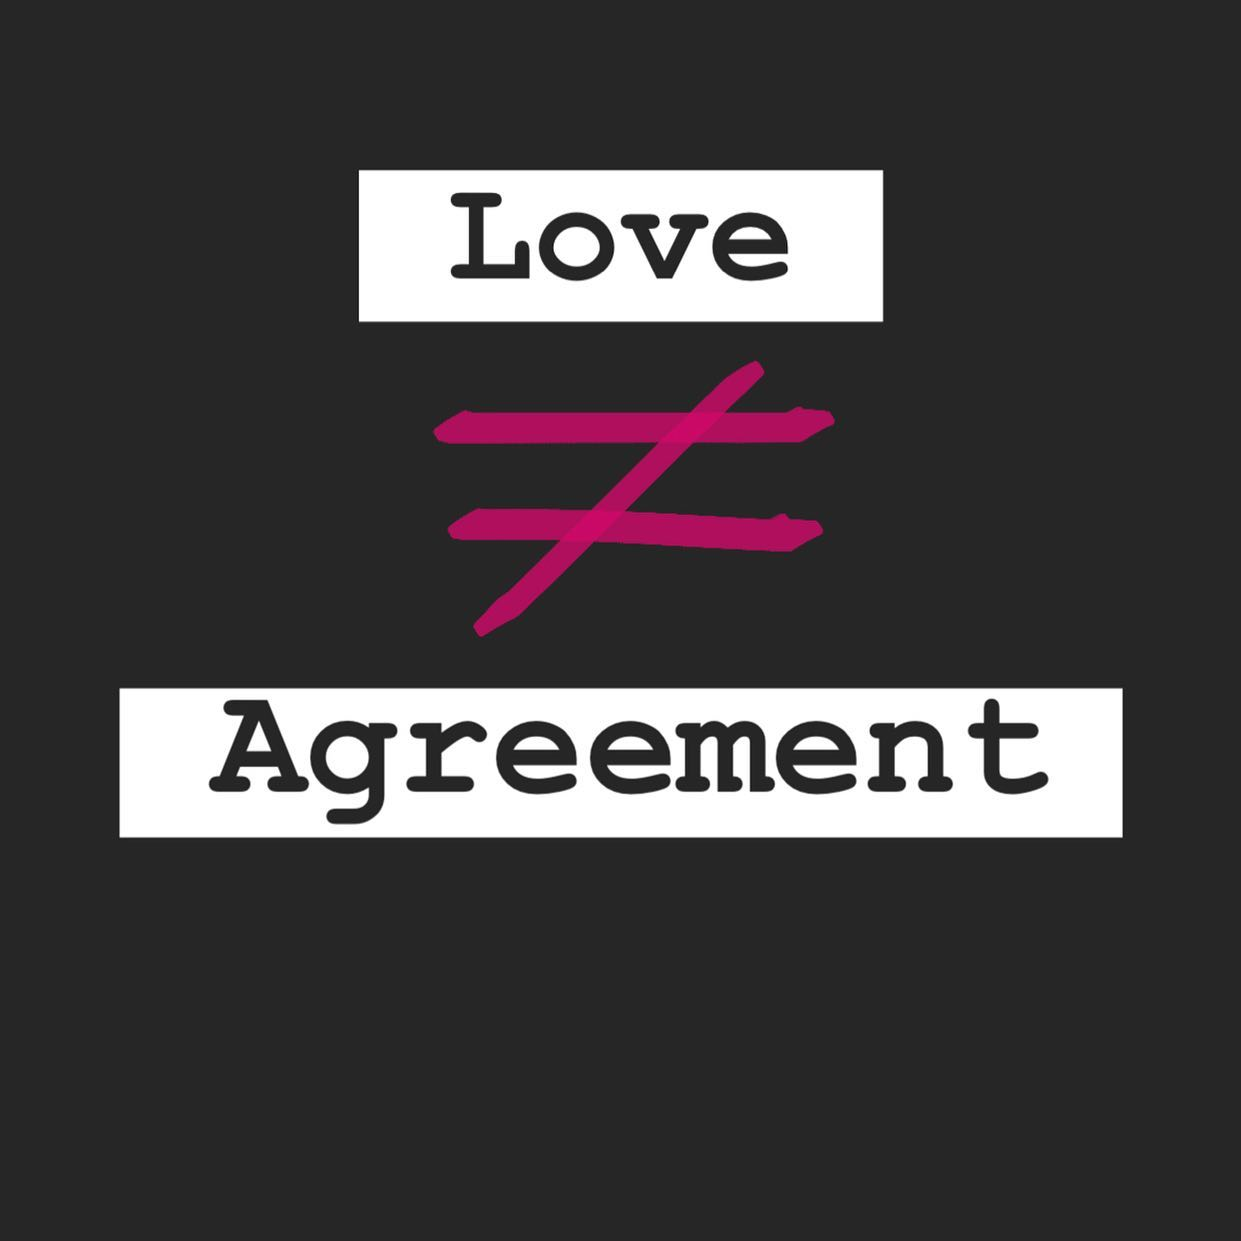 Love ≠ Agreement